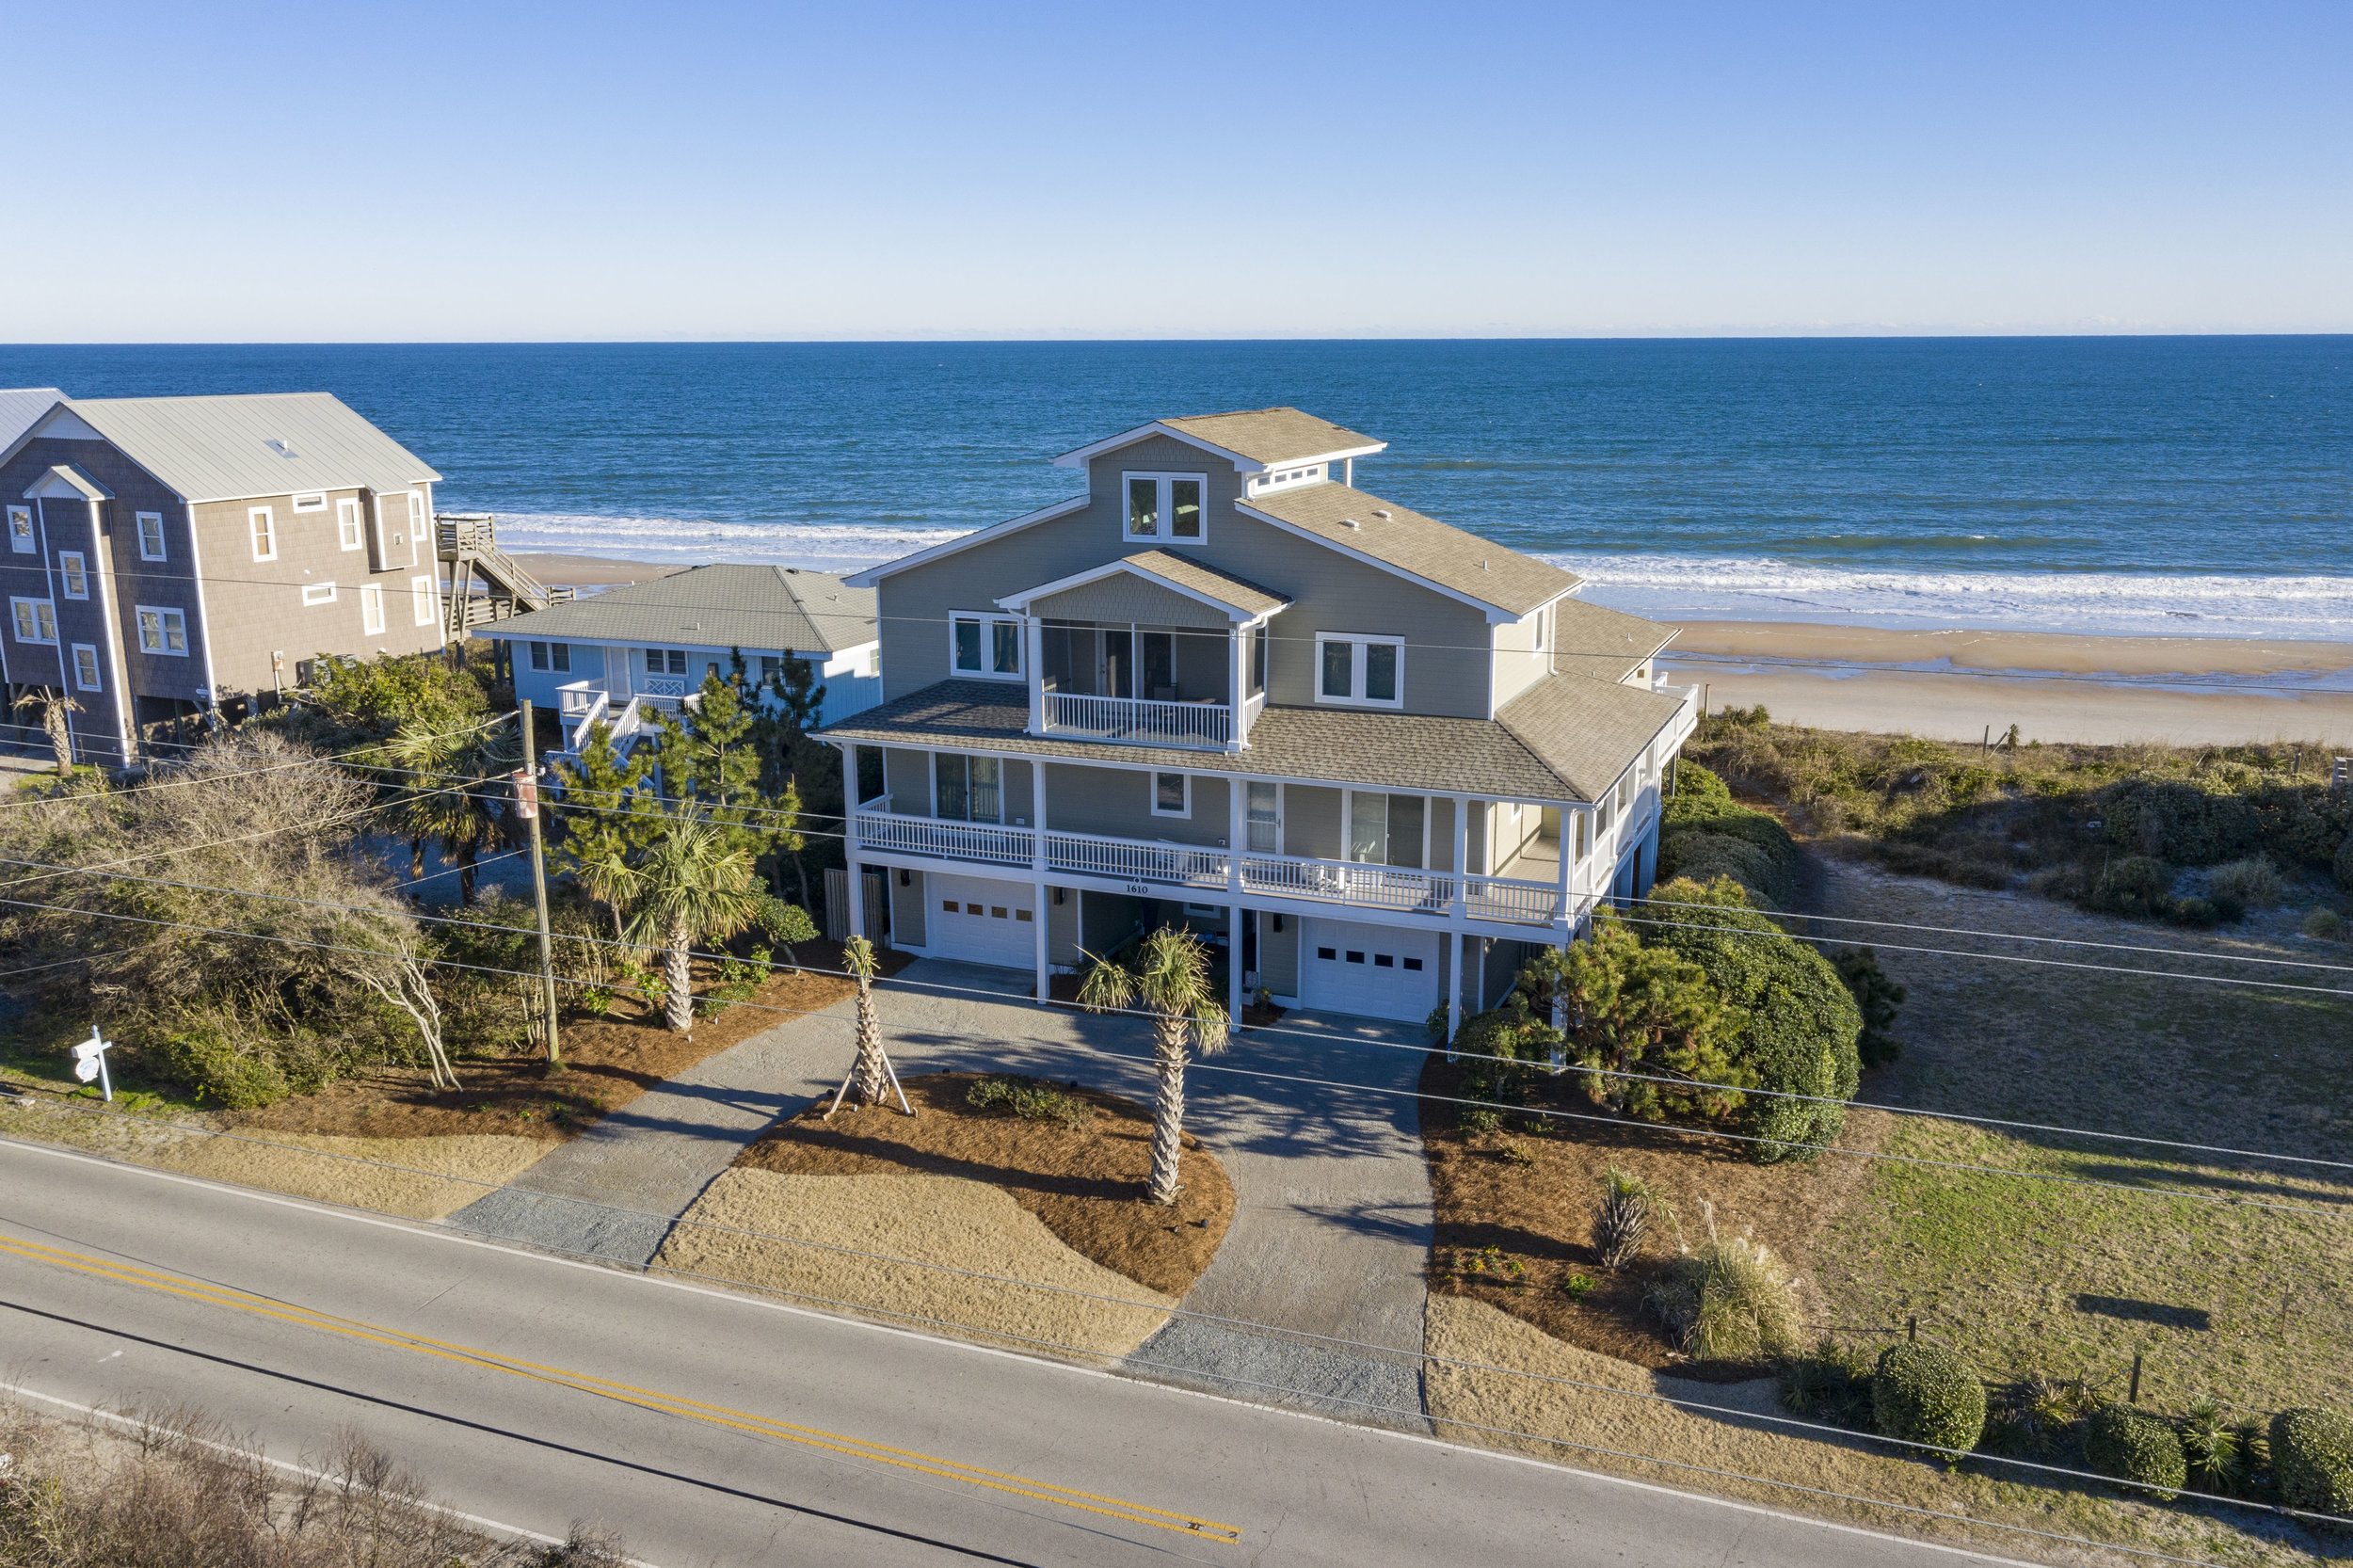 1610 S. Shore Drive, Surf City, NC